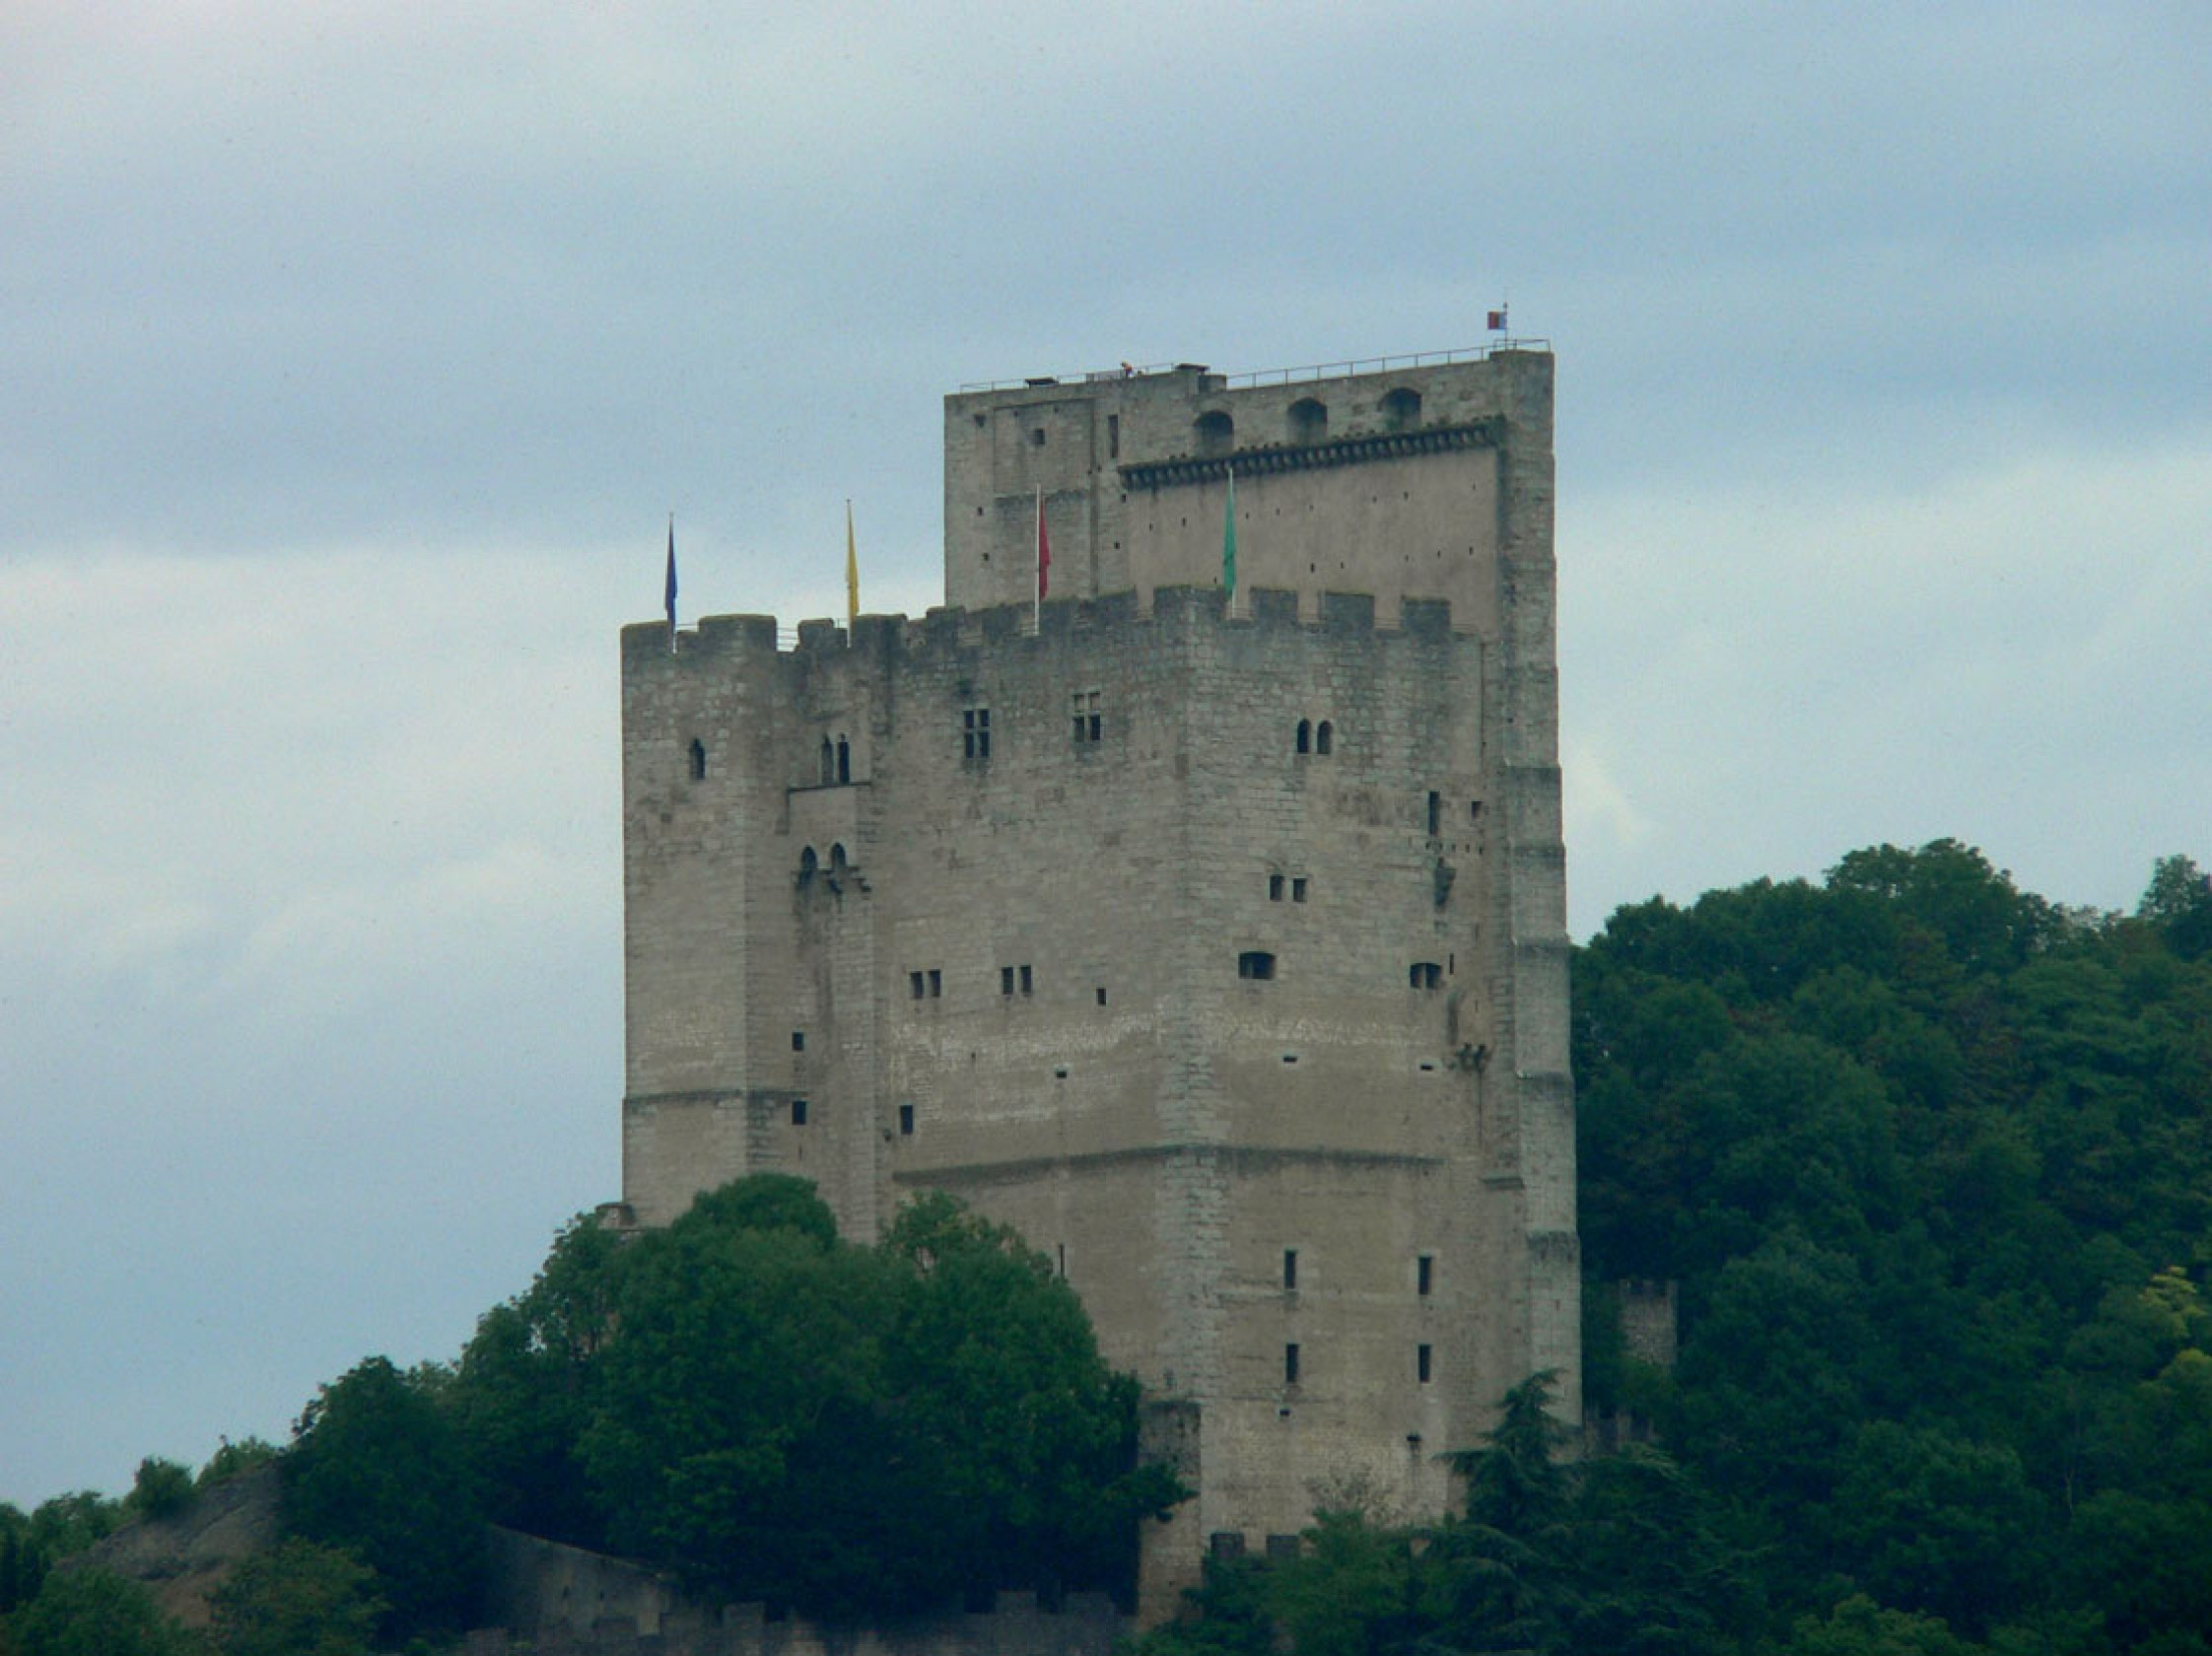 La Tour de Crest : plus haut donjon d'Europe